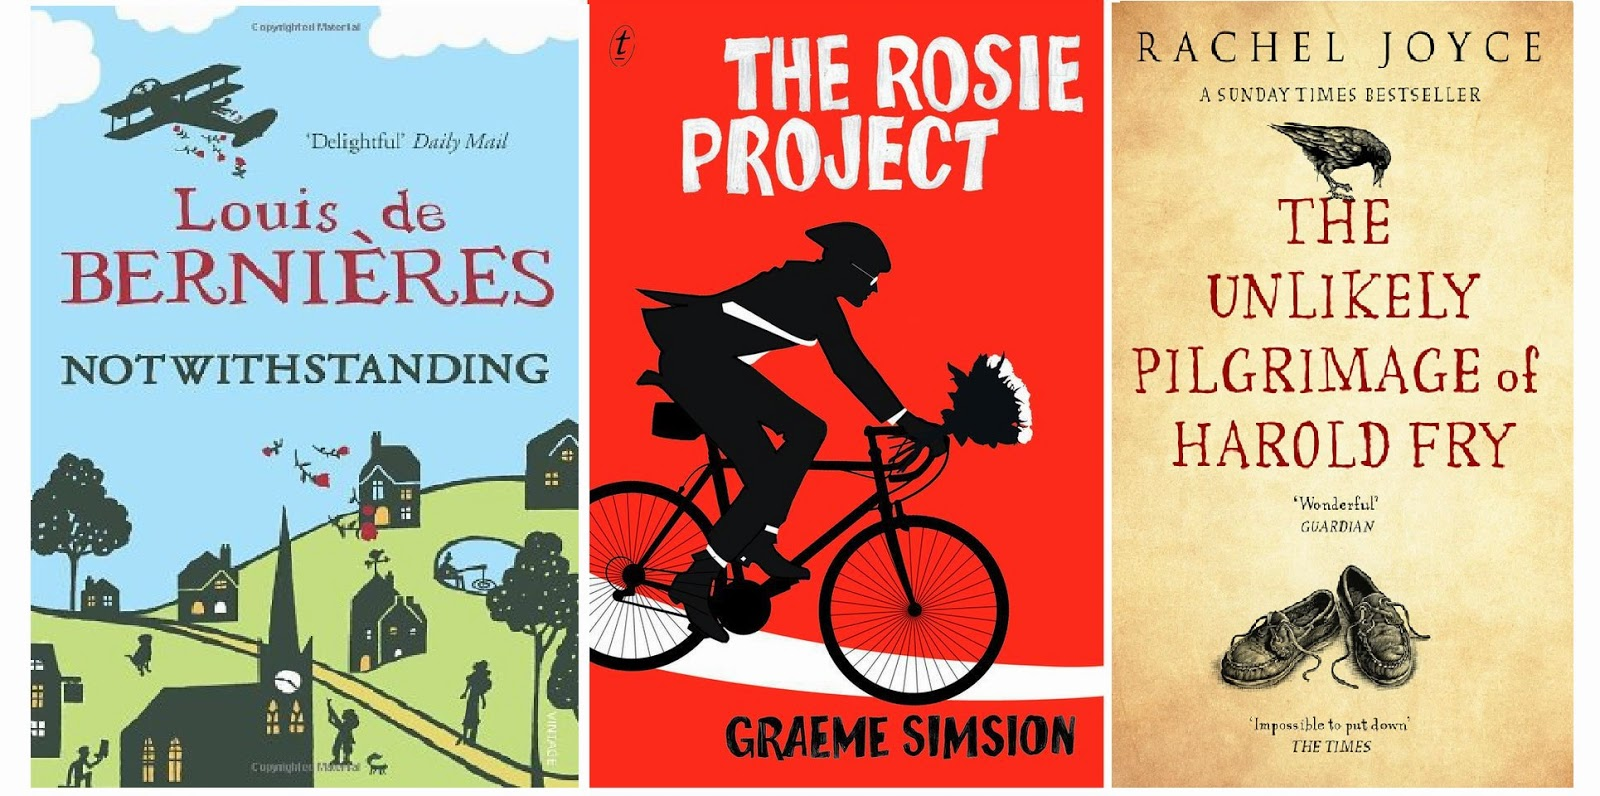 Notwithstanding, Louis De Bernieres, The Rosie Project, Graeme Simsion, The  Unlikely Pilgrimage Of Harold Fry, Rachel Joyce